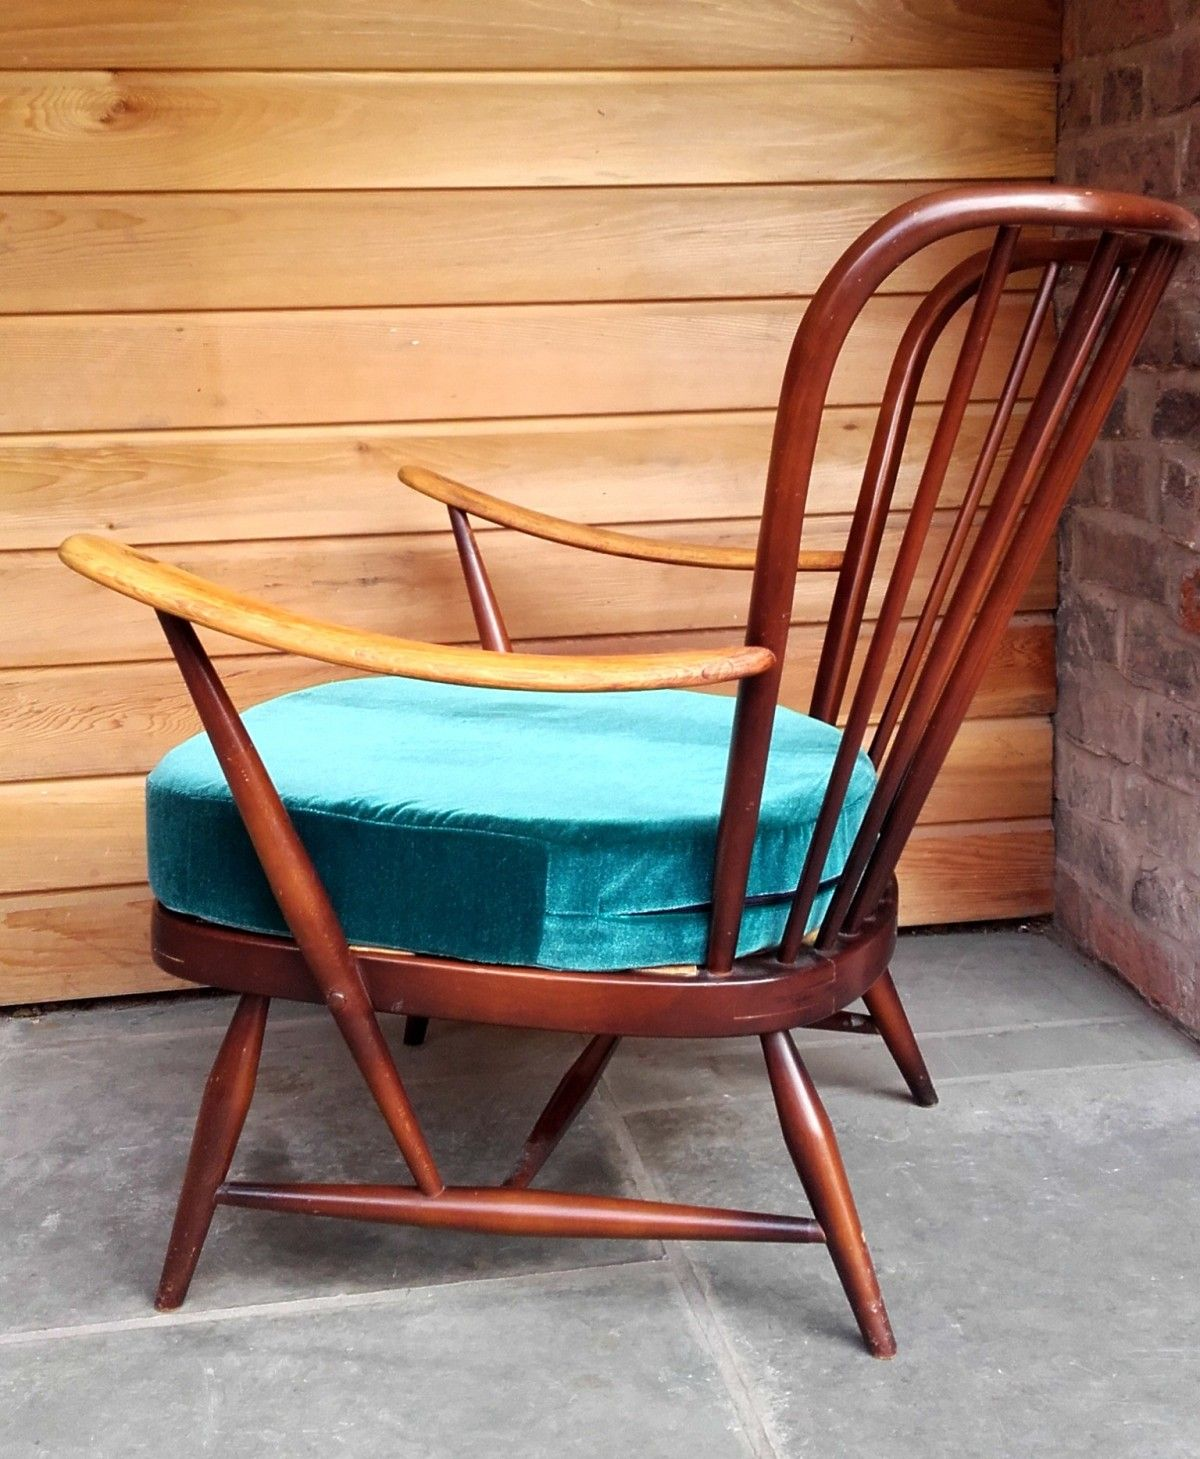 Antique easy chair - Gorgeously Curvy Ercol Model 477 Easy Chair 07